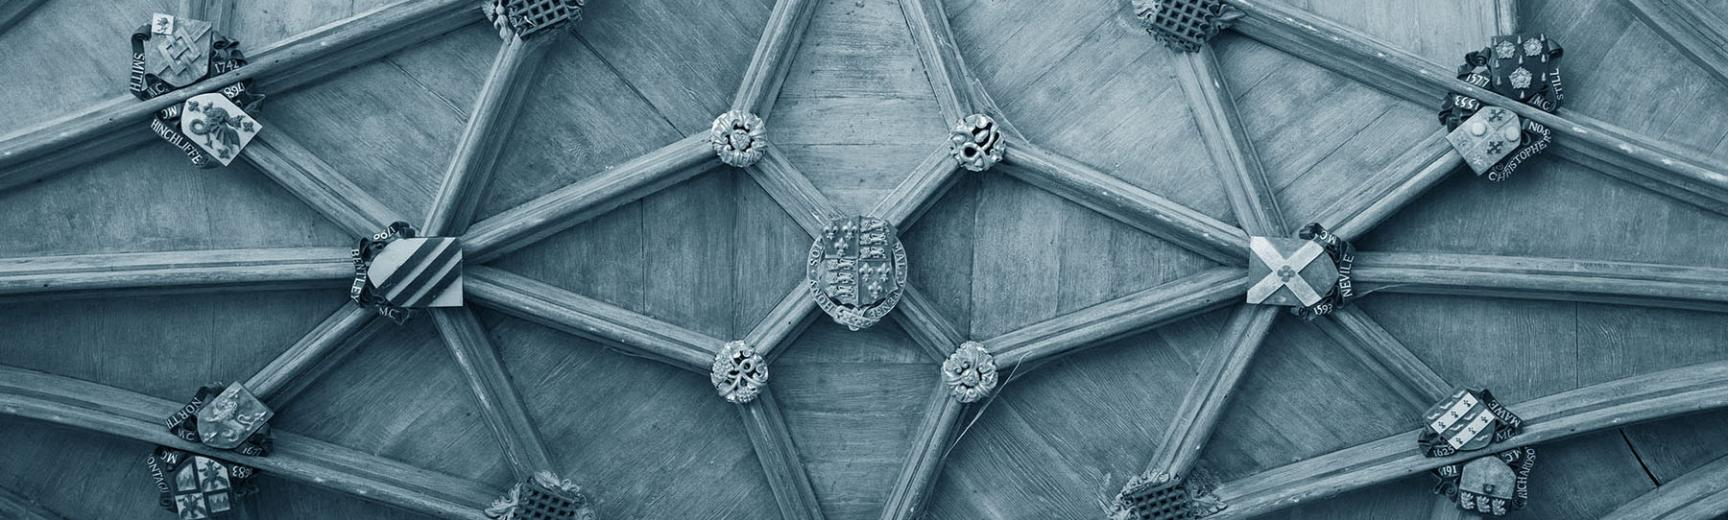 Oxford University crests on the ceiling